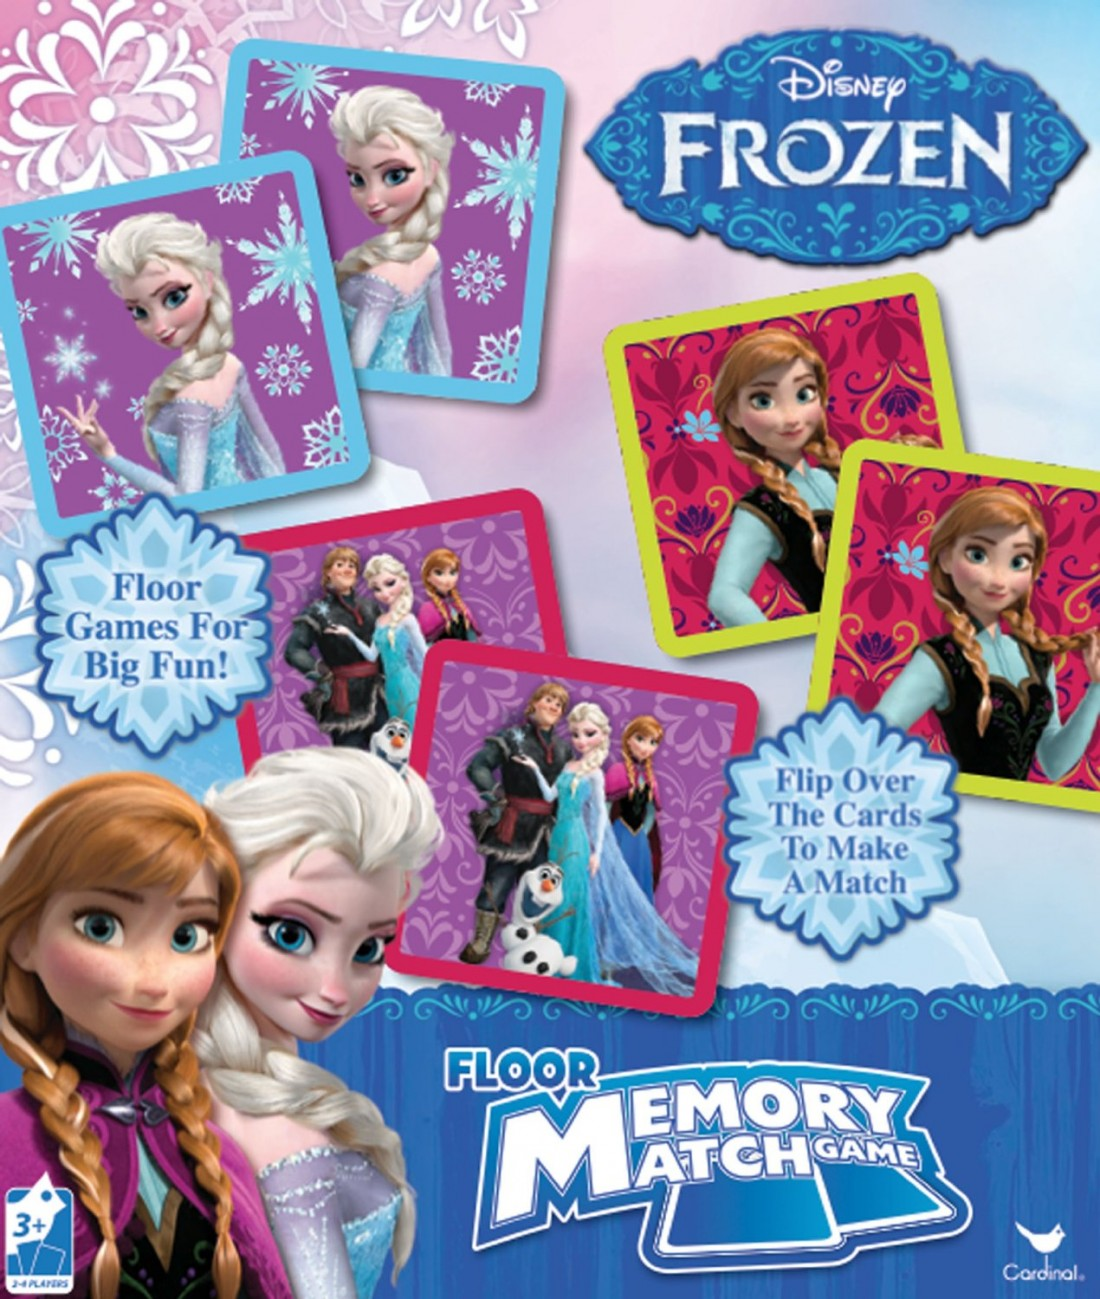 Uncategorized Frozen Games For Kids frozen games for preschoolers its baby time disney floor memory match game